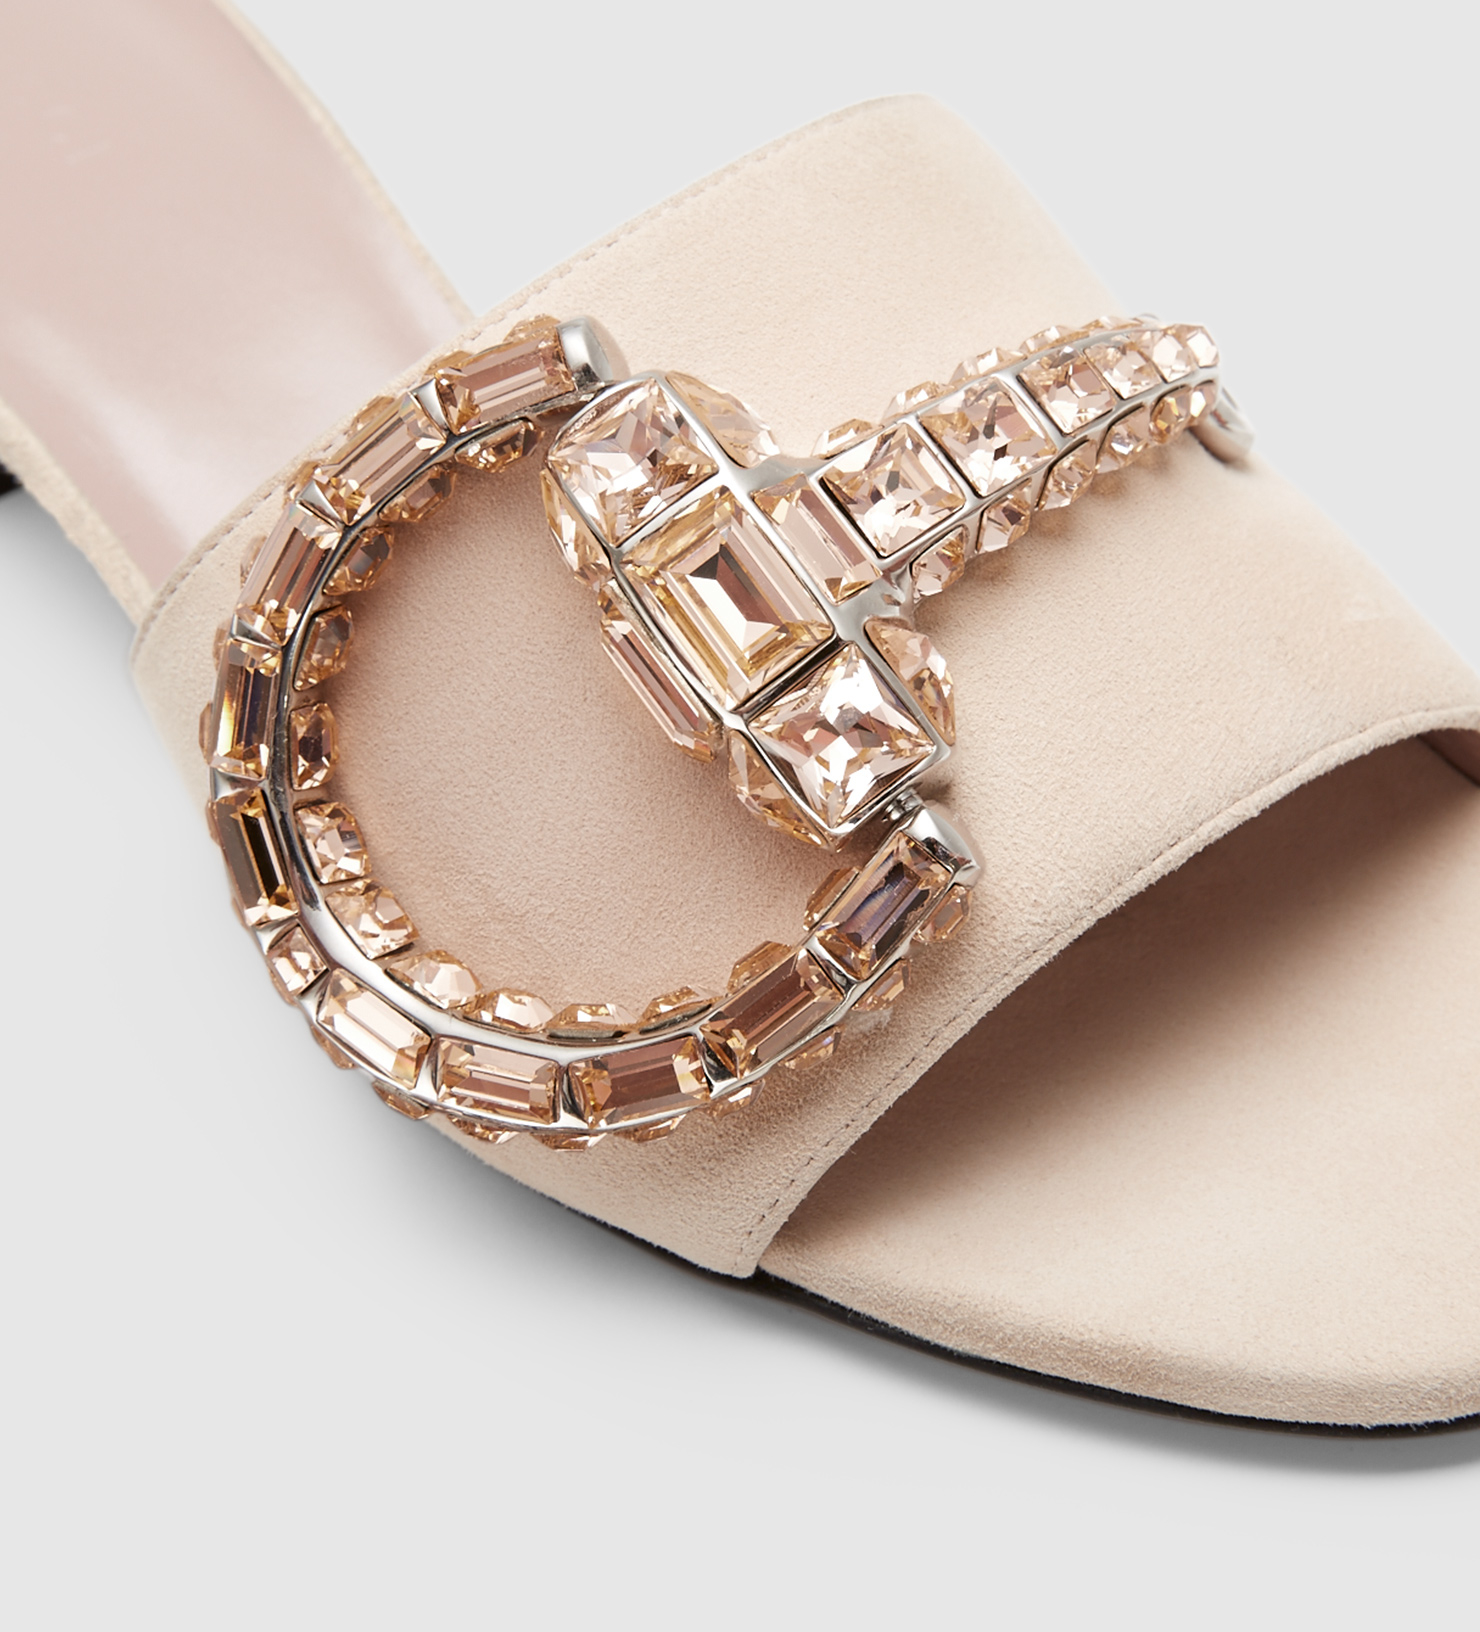 d2f7130ea9a Lyst - Gucci Maxime Crystal Covered Horsebit Suede Sandal in Natural